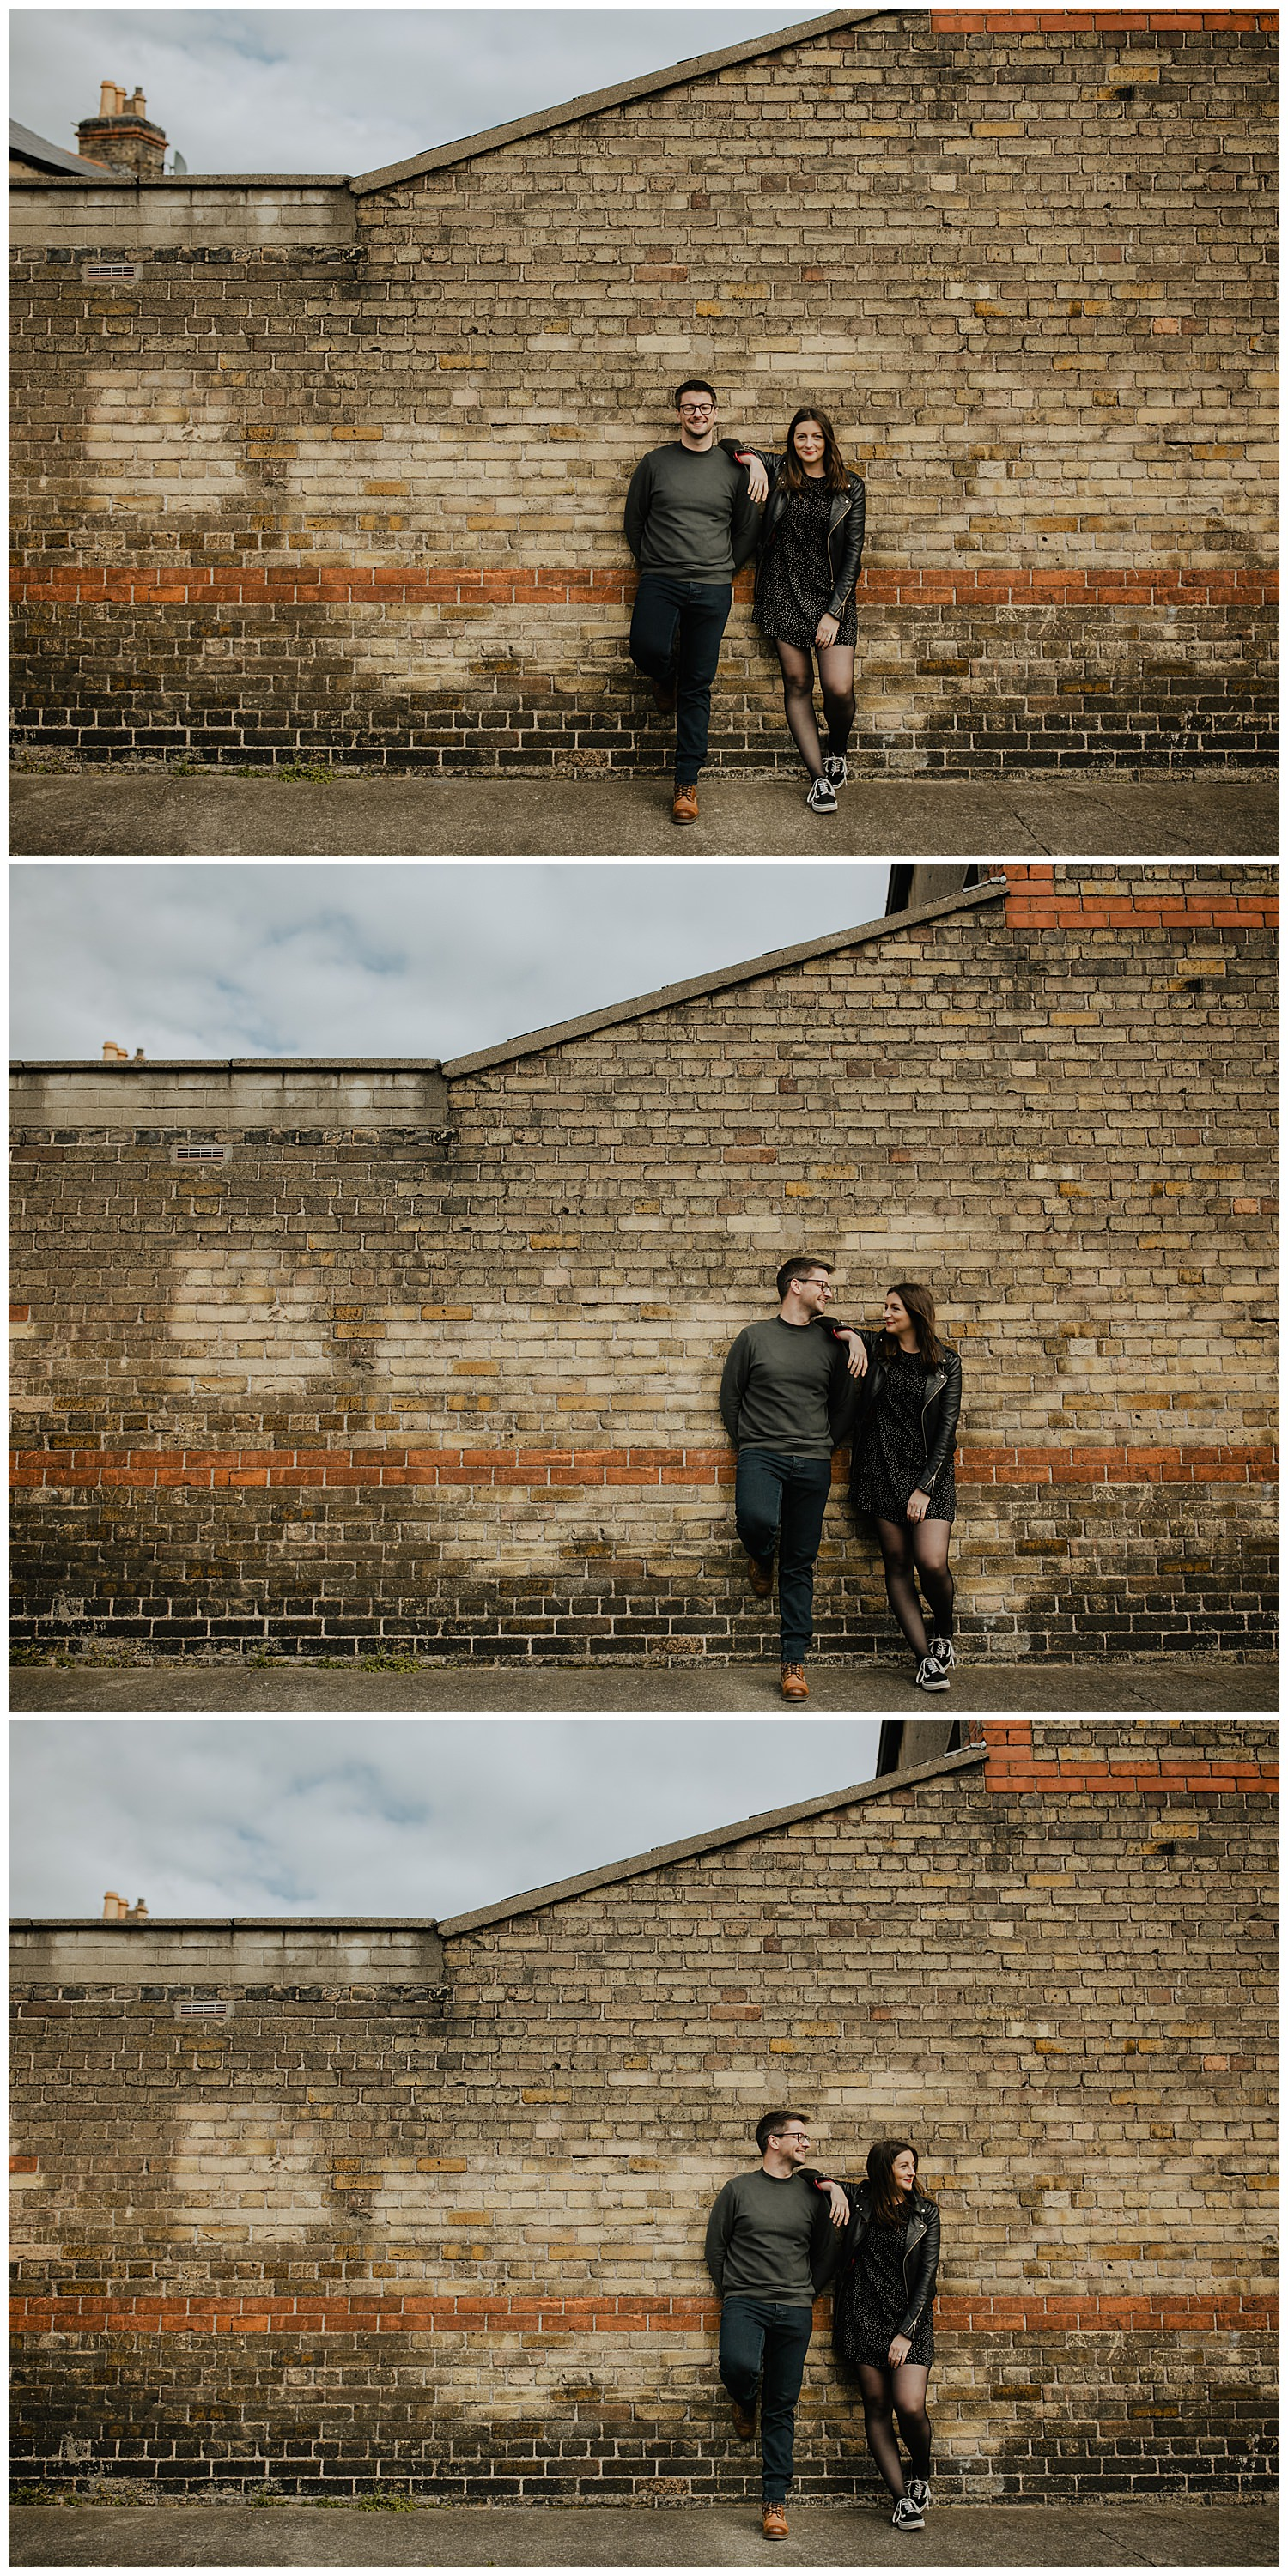 j-l-house-engagement-session-dublin-wedding-photographer-livia-figueiredo_9.jpg